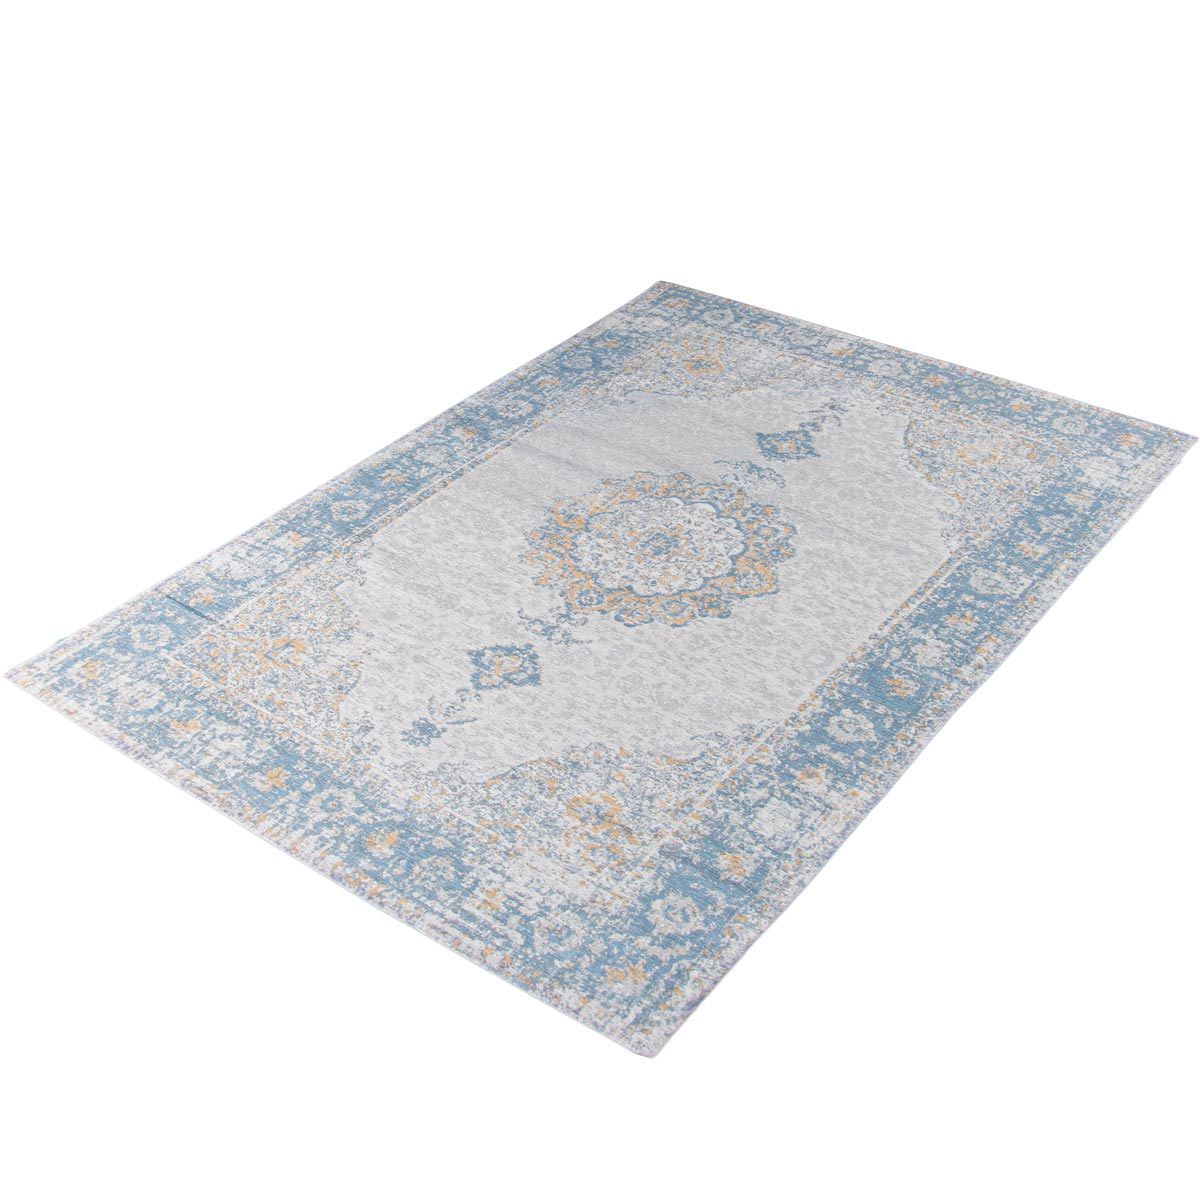 Marseille Rug 34 Blue/Beige/Yellow 3